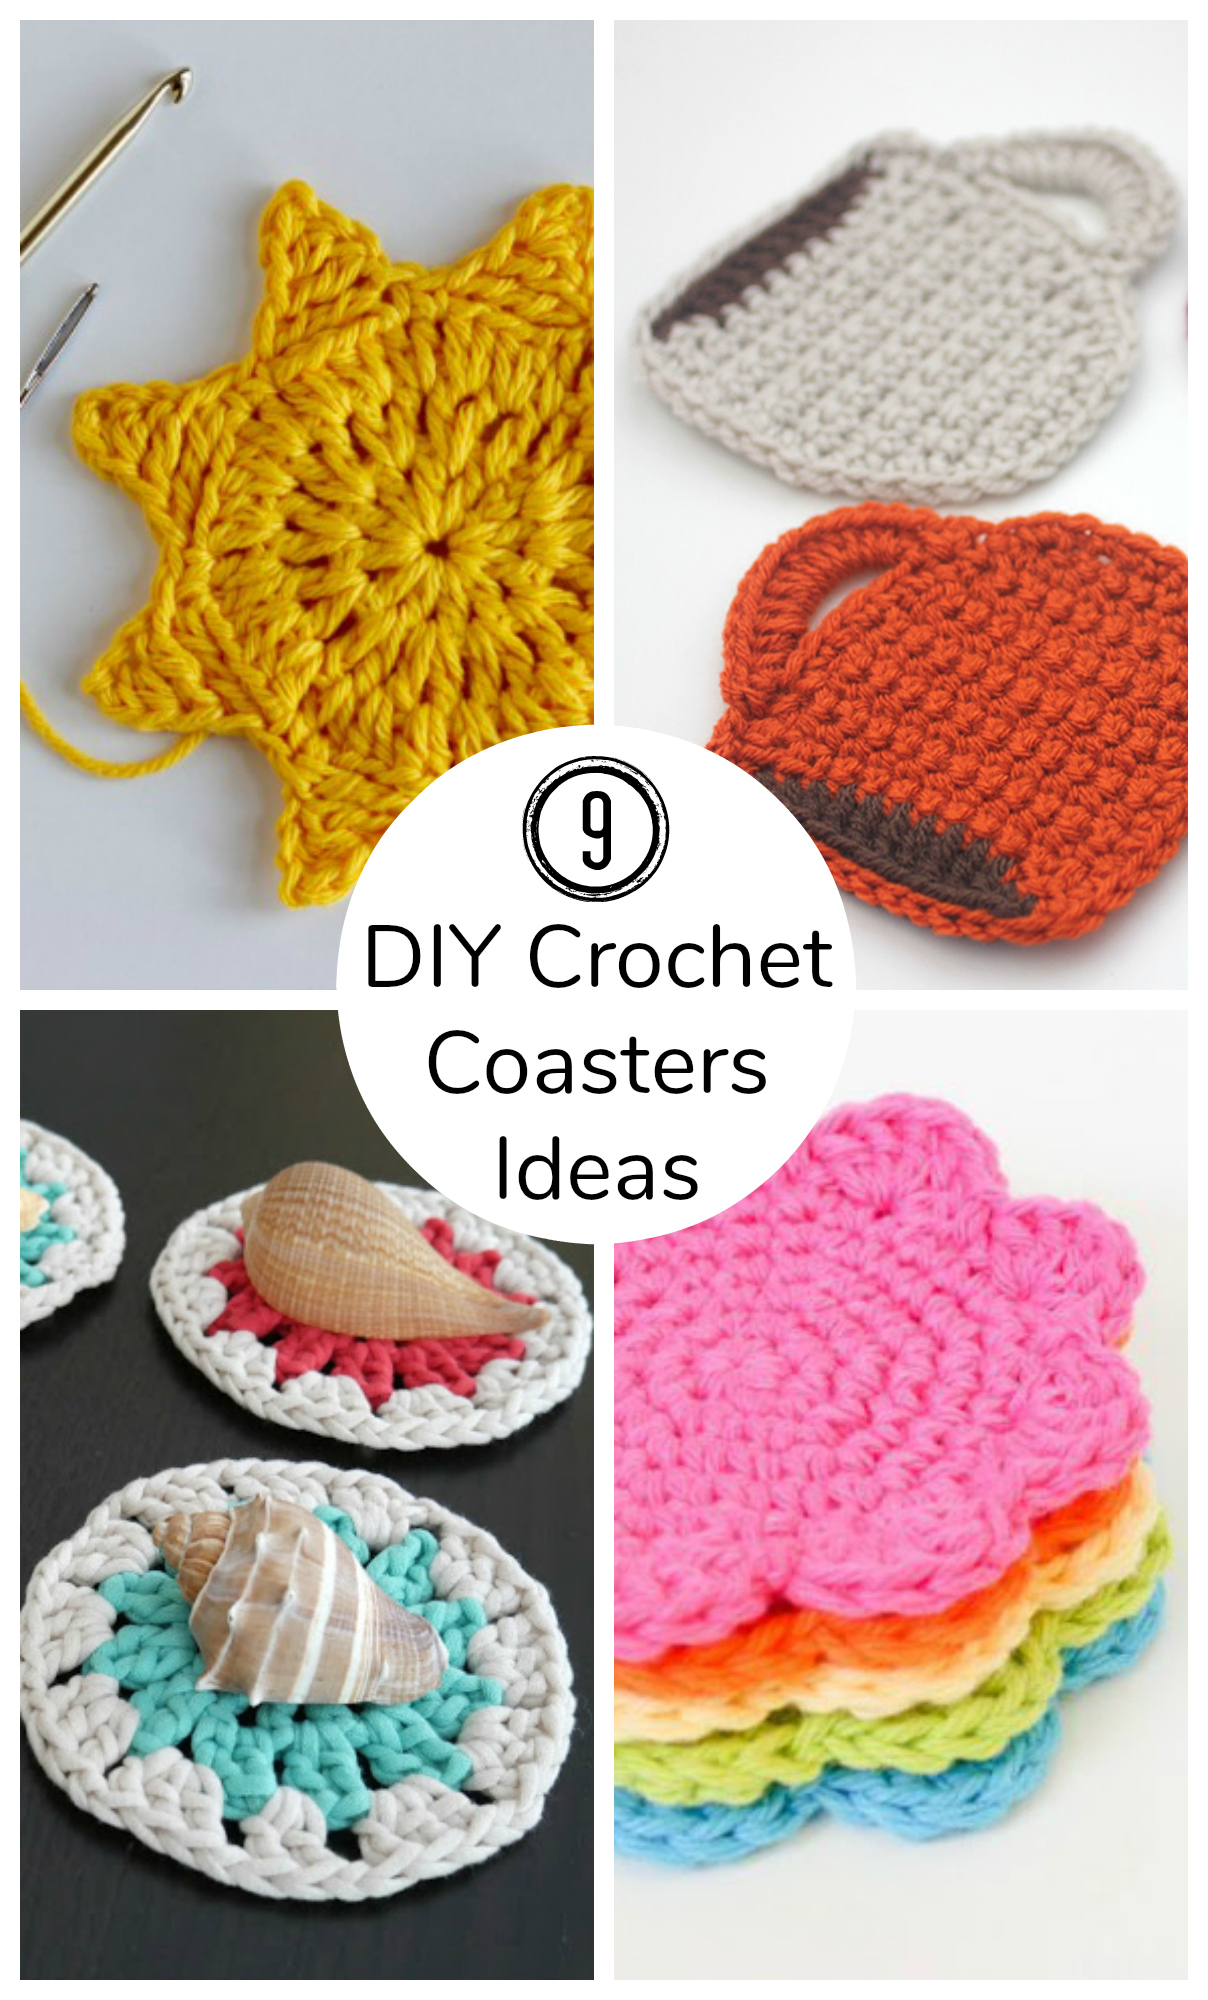 9 DIY Crochet Coasters Ideas to Make